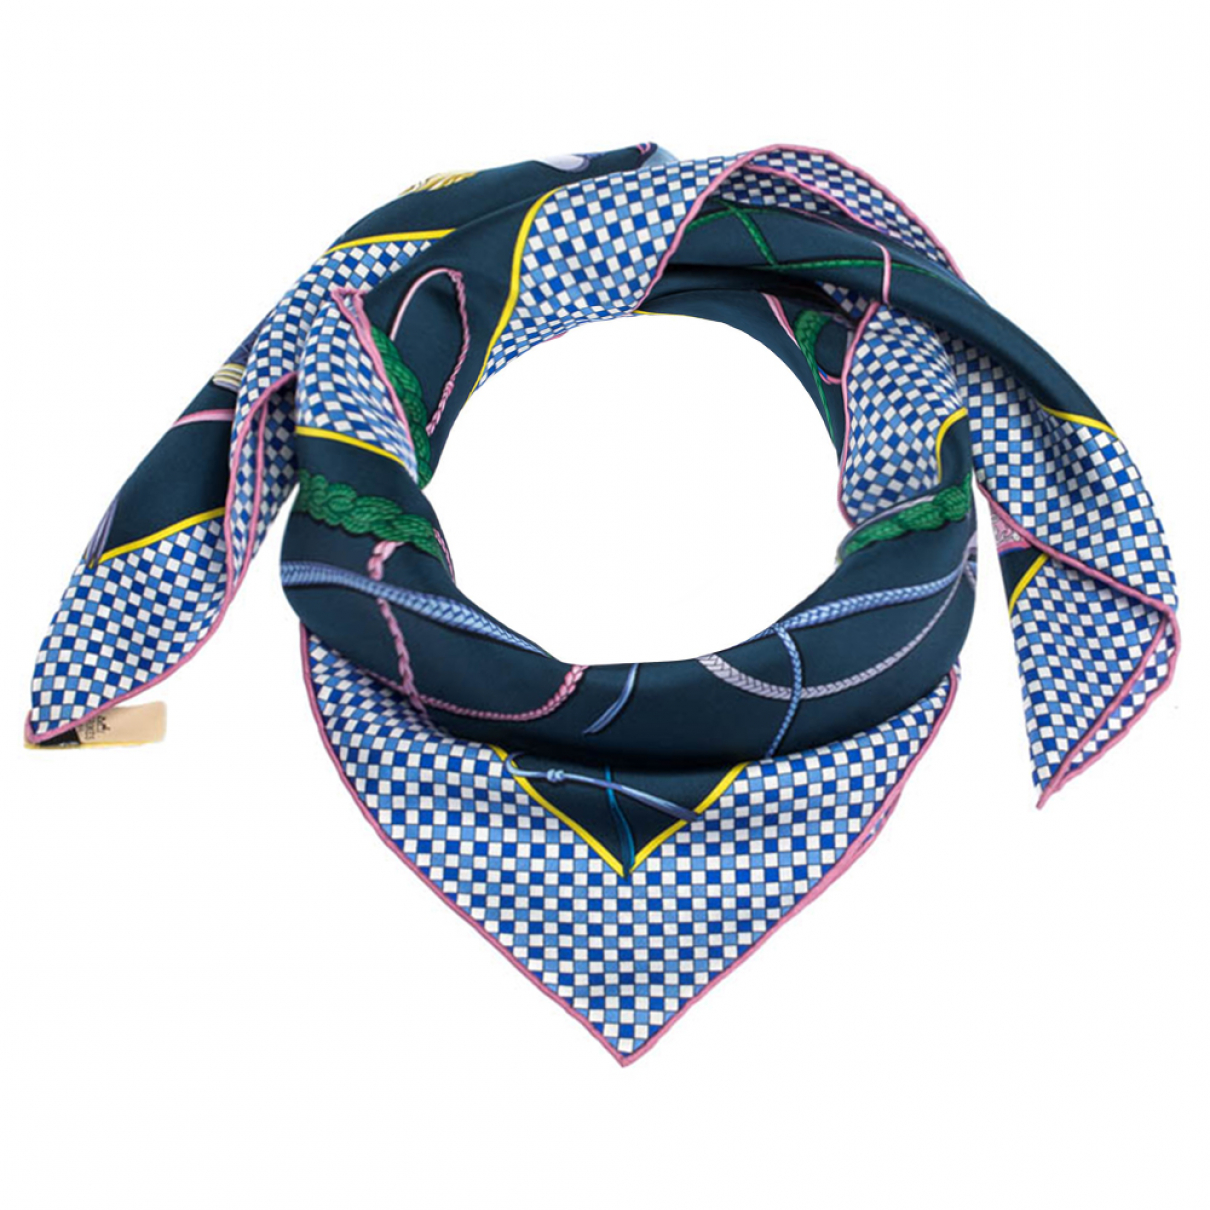 Hermès \N Silk scarf for Women \N